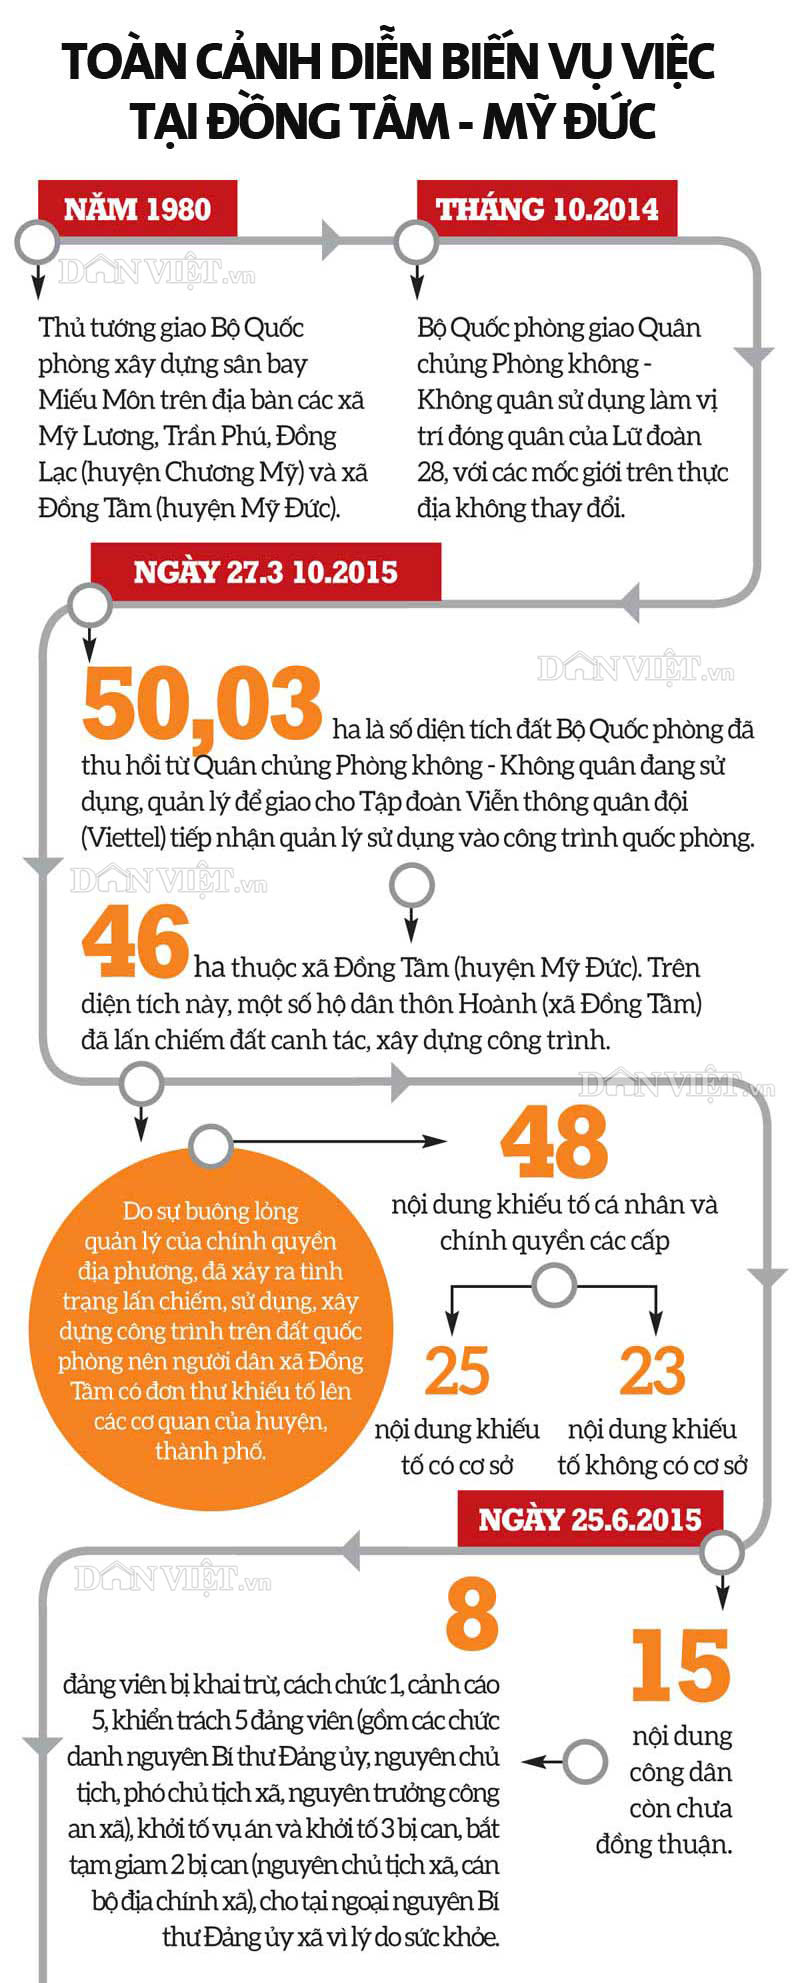 infographic: toan canh dien bien vu viec tai dong tam - my duc hinh anh 1